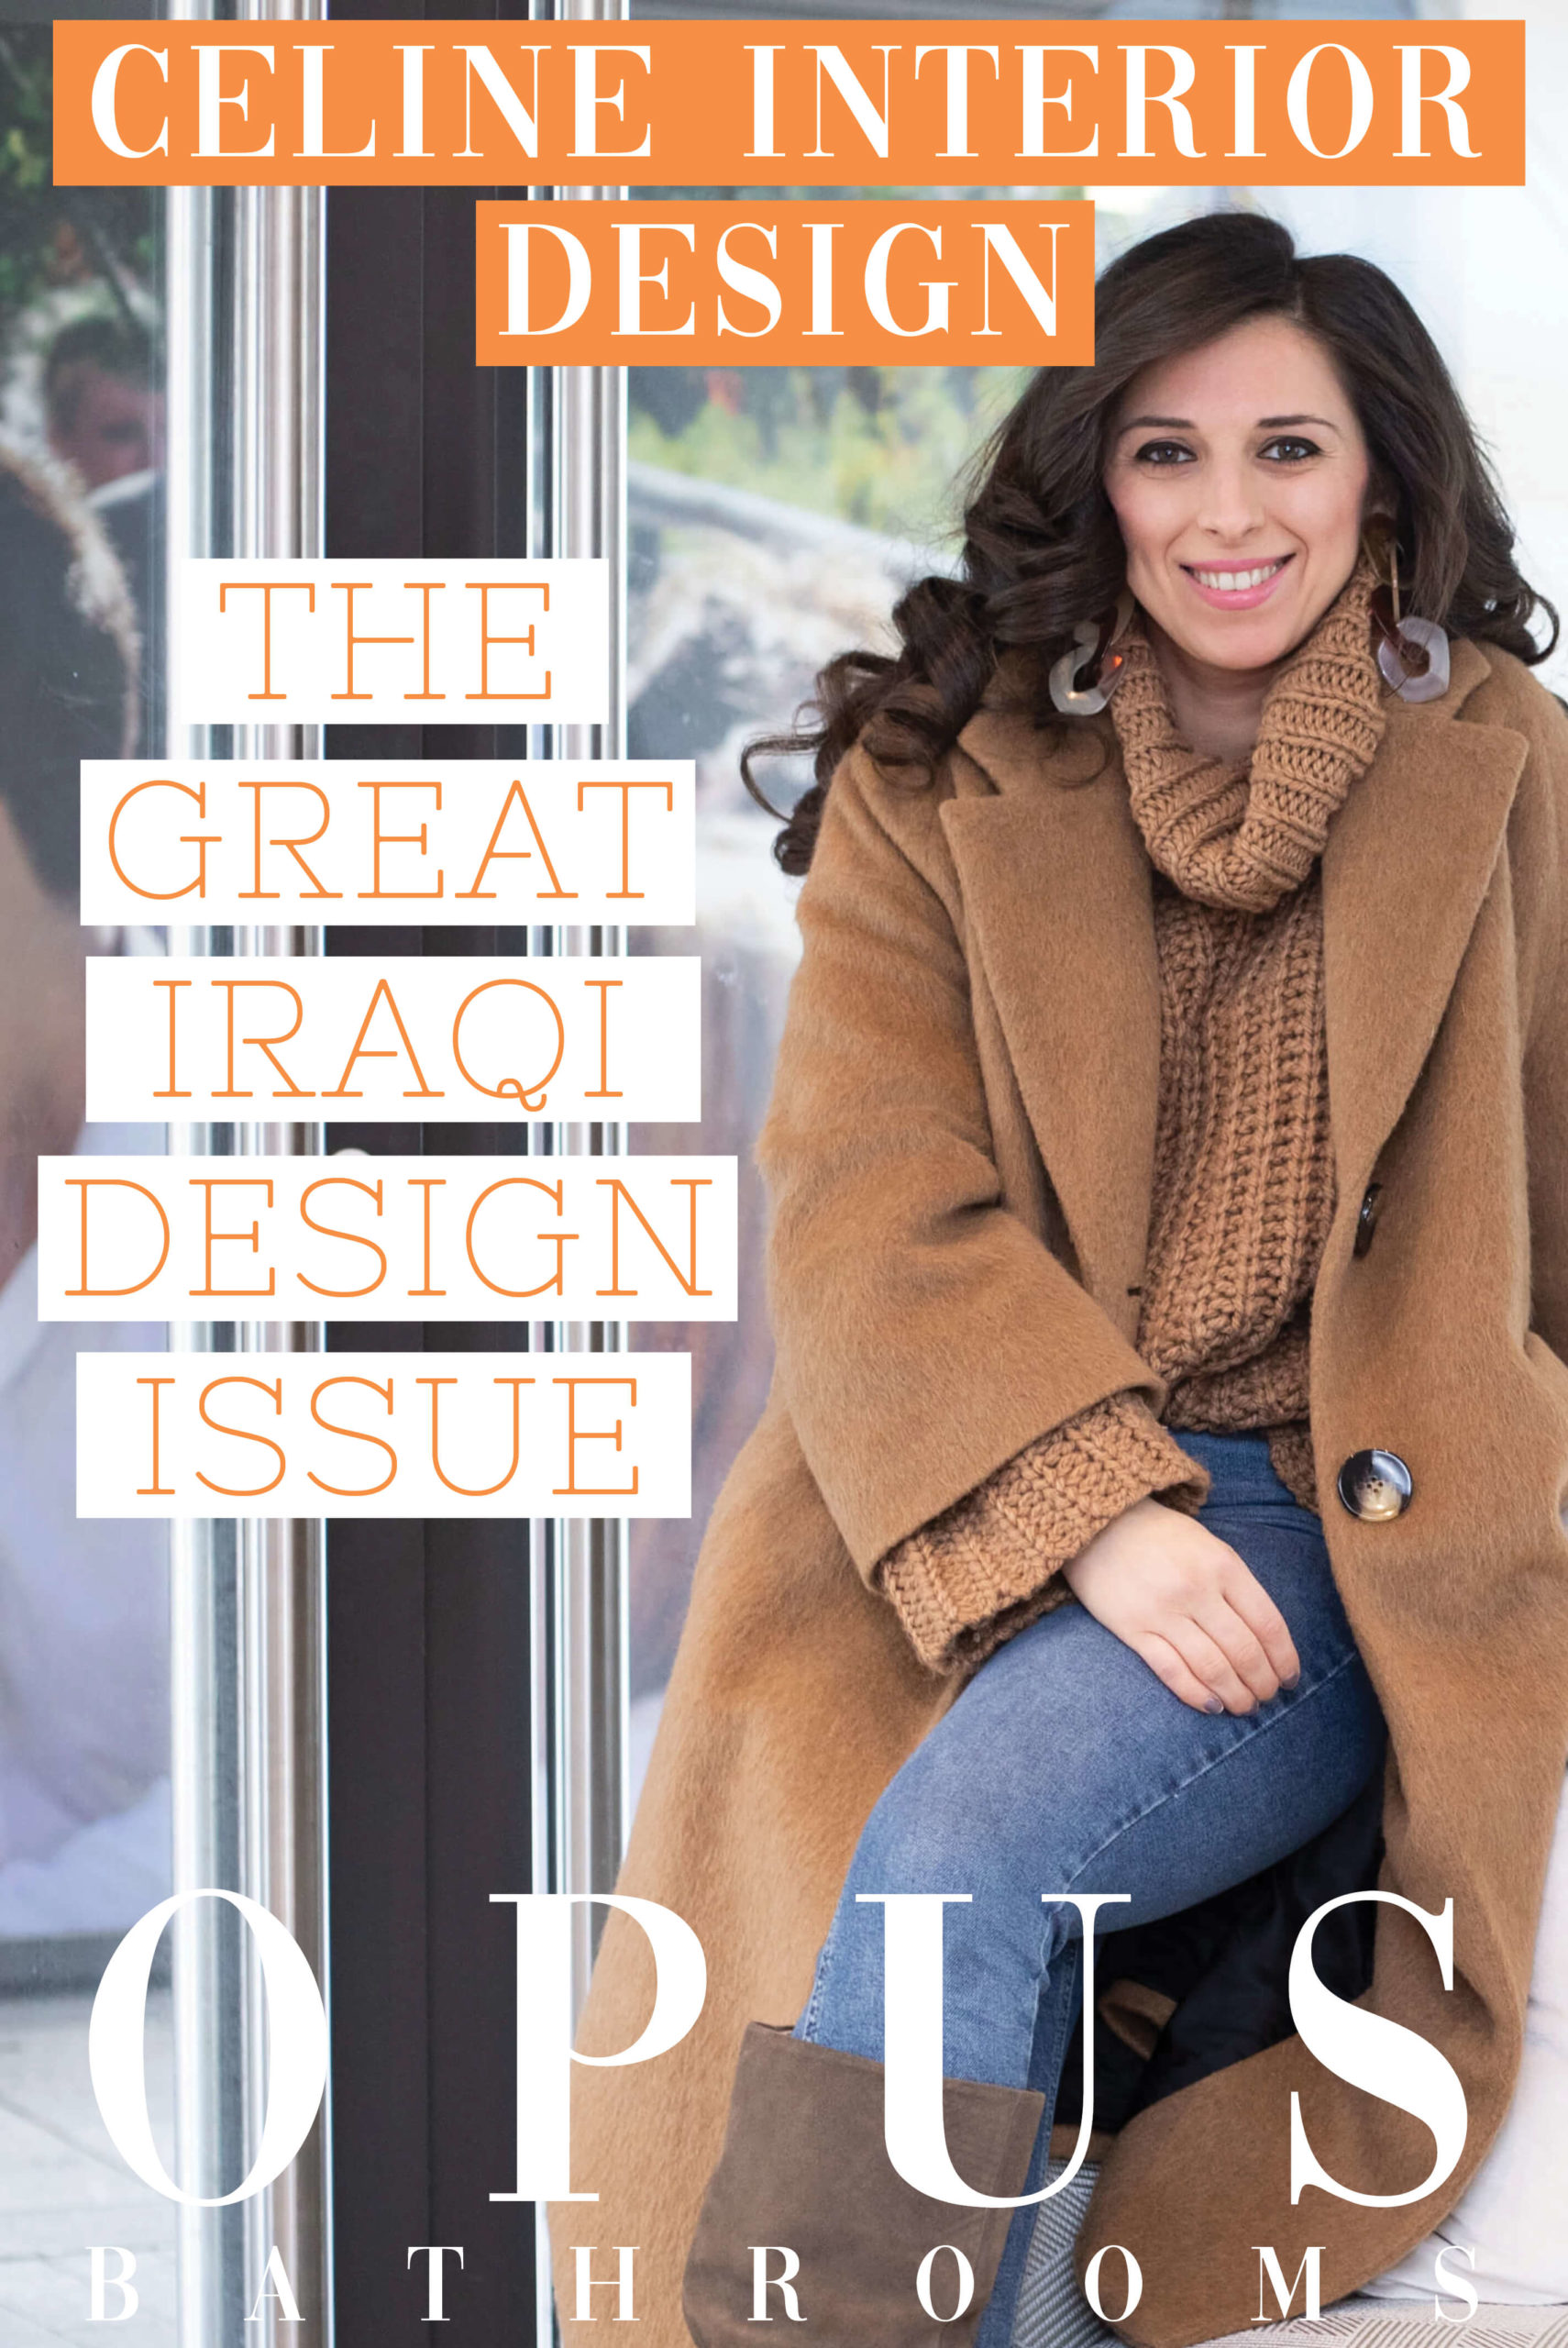 The Great Iraqi Designer: Noor Charchafchi Of Celine Interior Design